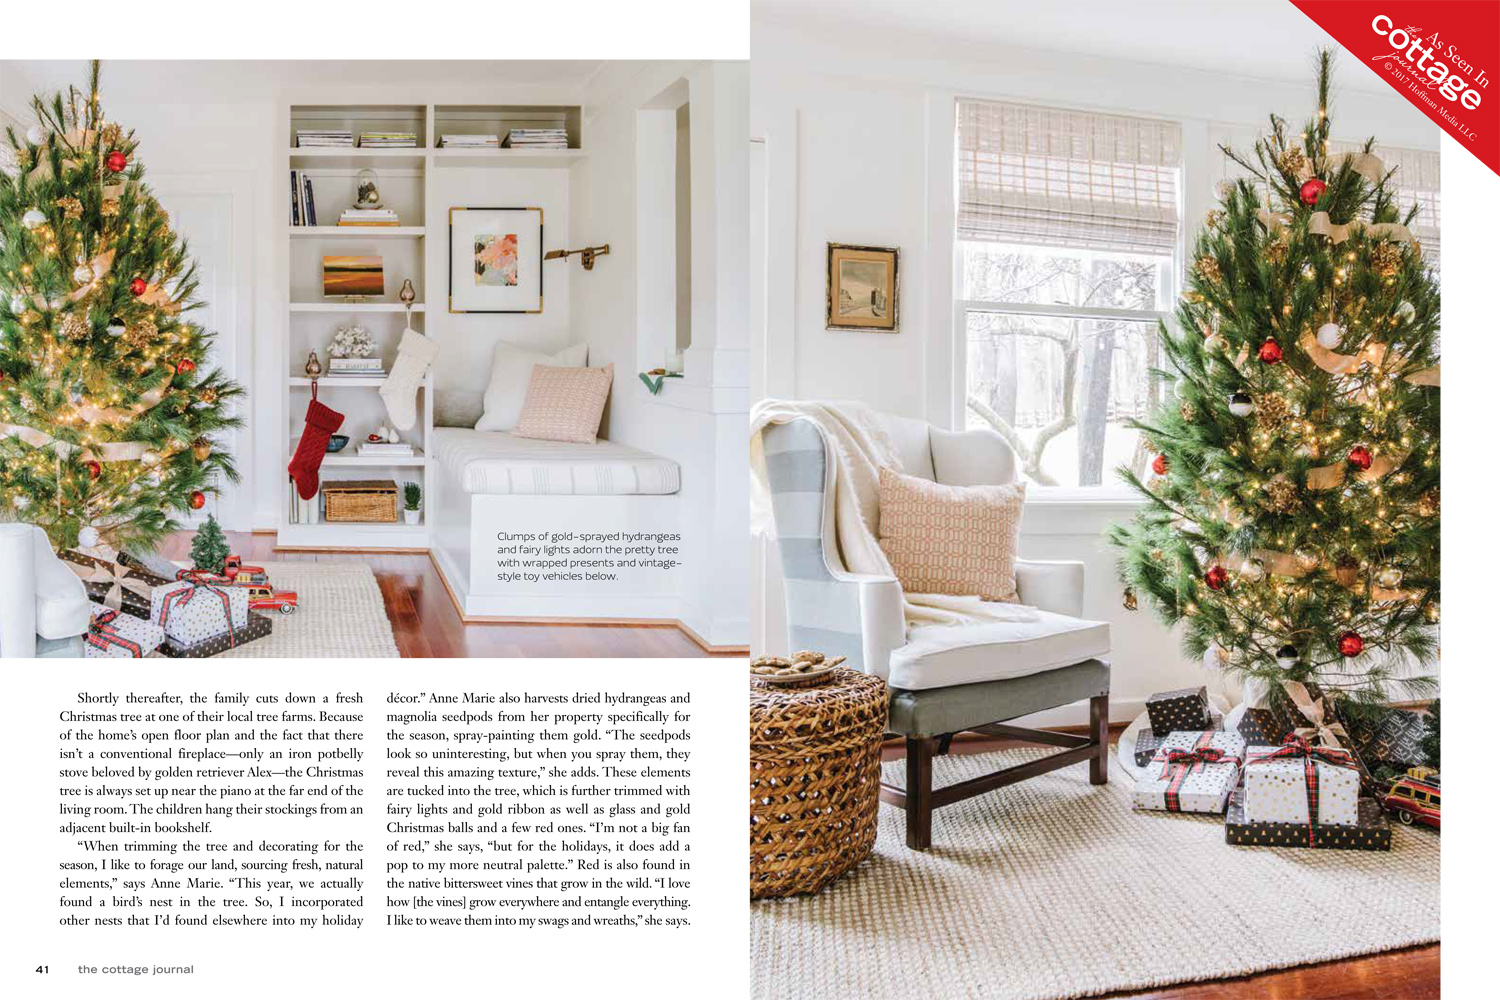 CottageJournal_Christmas_pg3-1.jpg